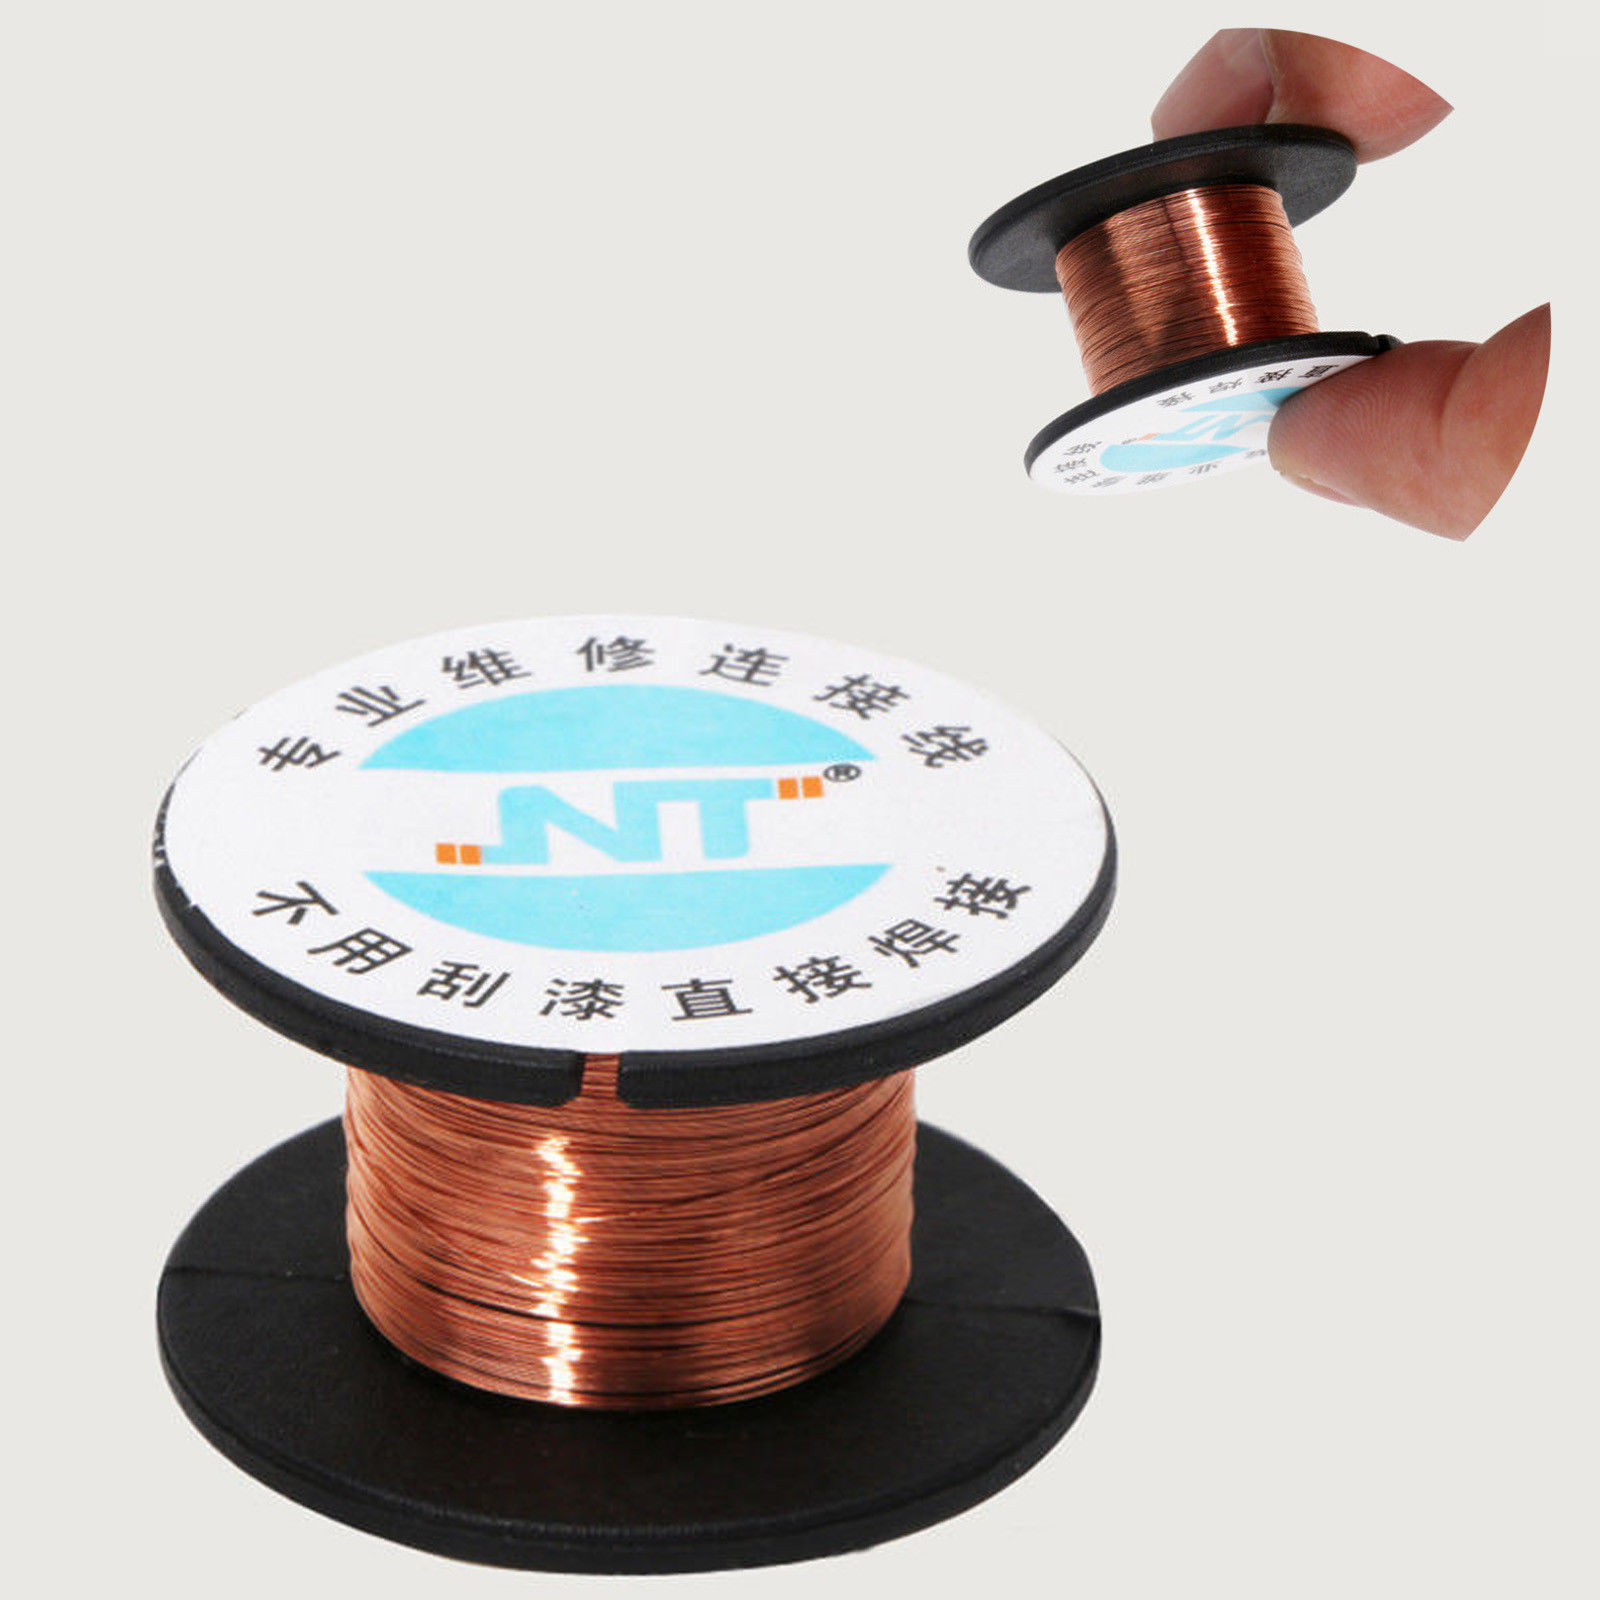 0.1MM Copper Soldering Solder PPA Enamelled Repair Reel Wire 15m FAST SHIPPING